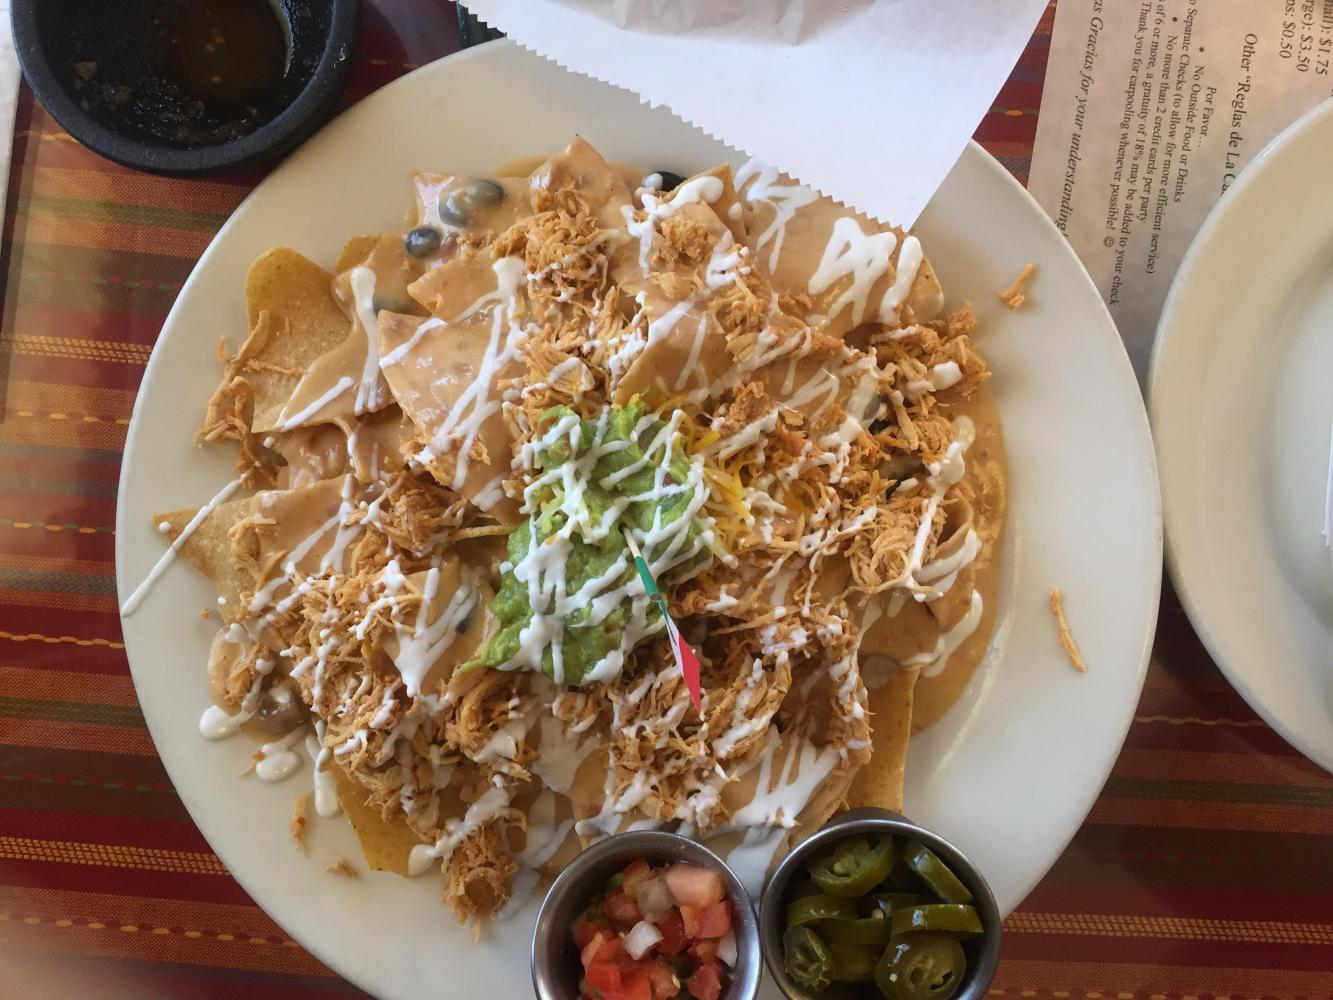 A plate of Los Chaparros nachos with chicken.